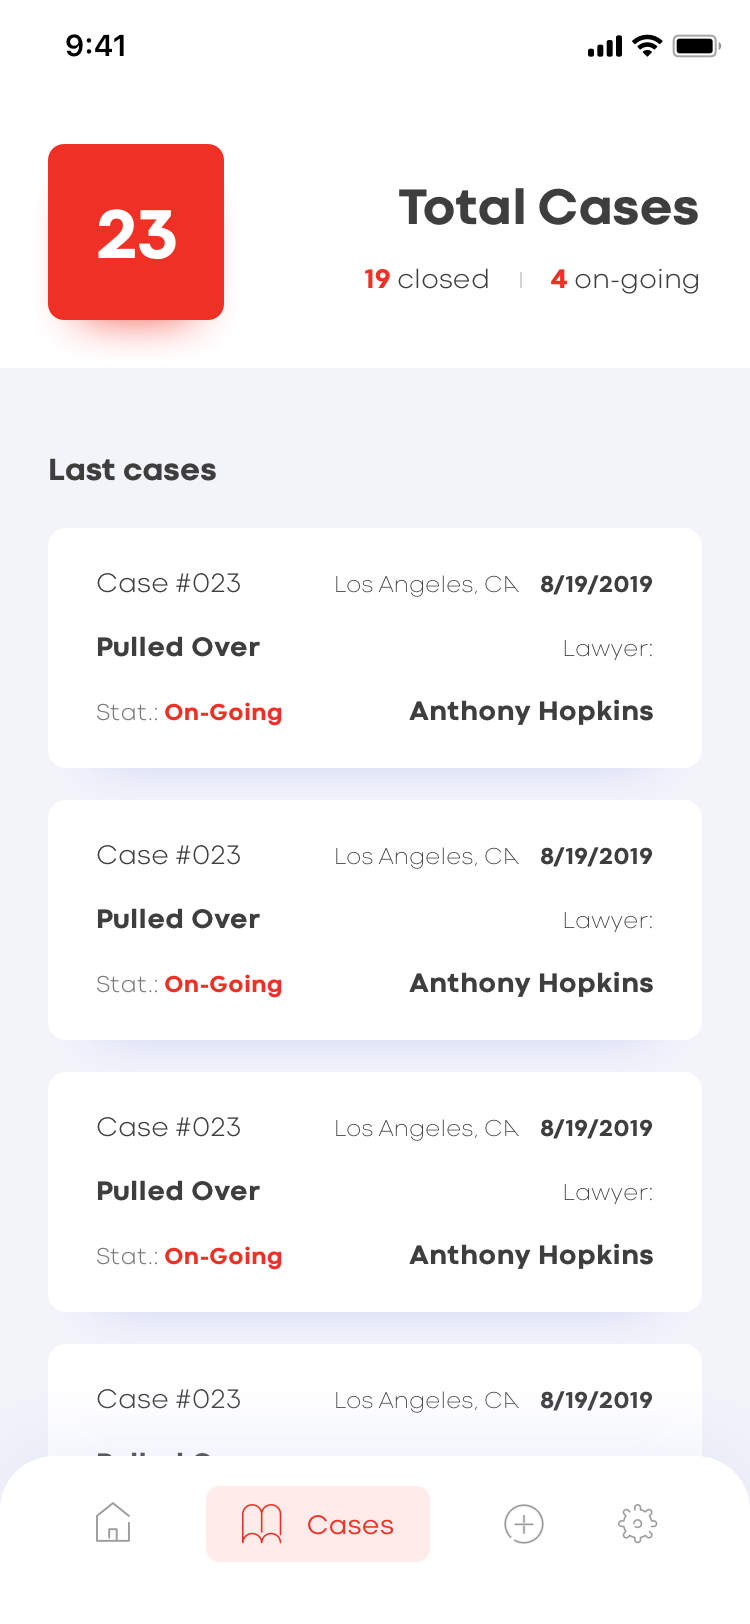 ABILITY TO REVIEW CASE LOG HISTORY